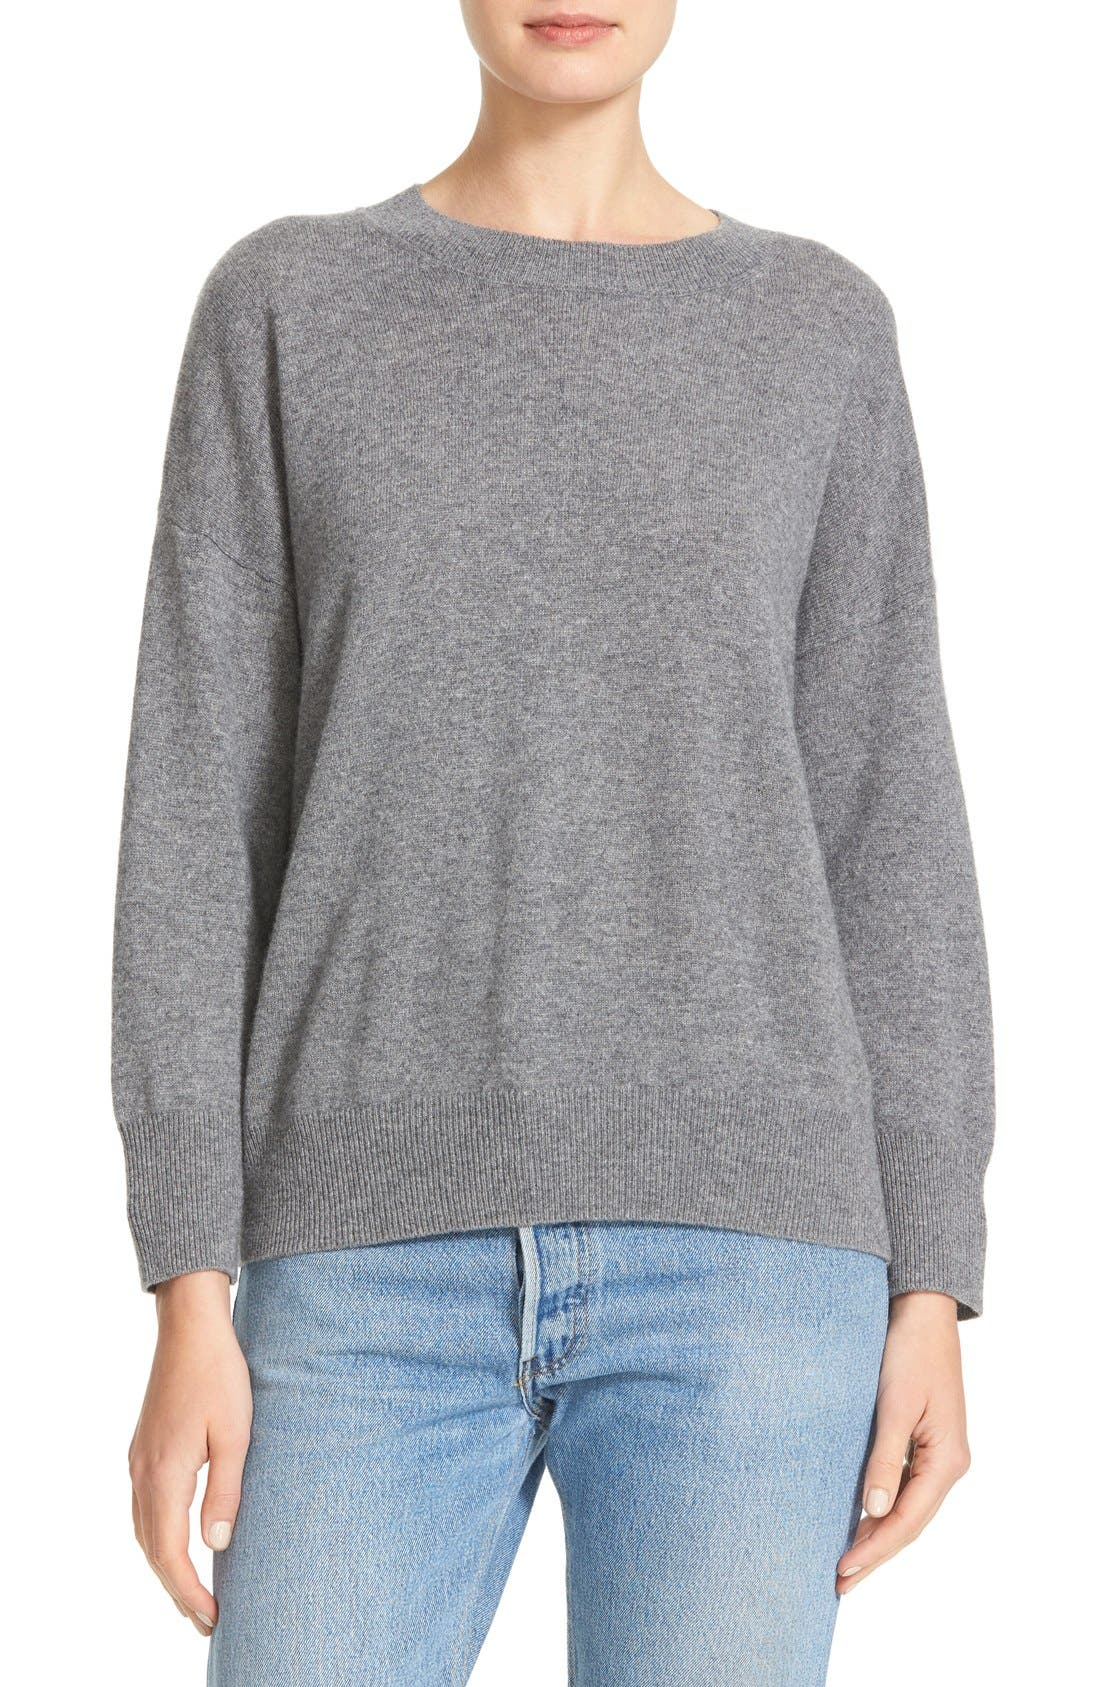 Main Image - Equipment Melanie Cashmere Sweater